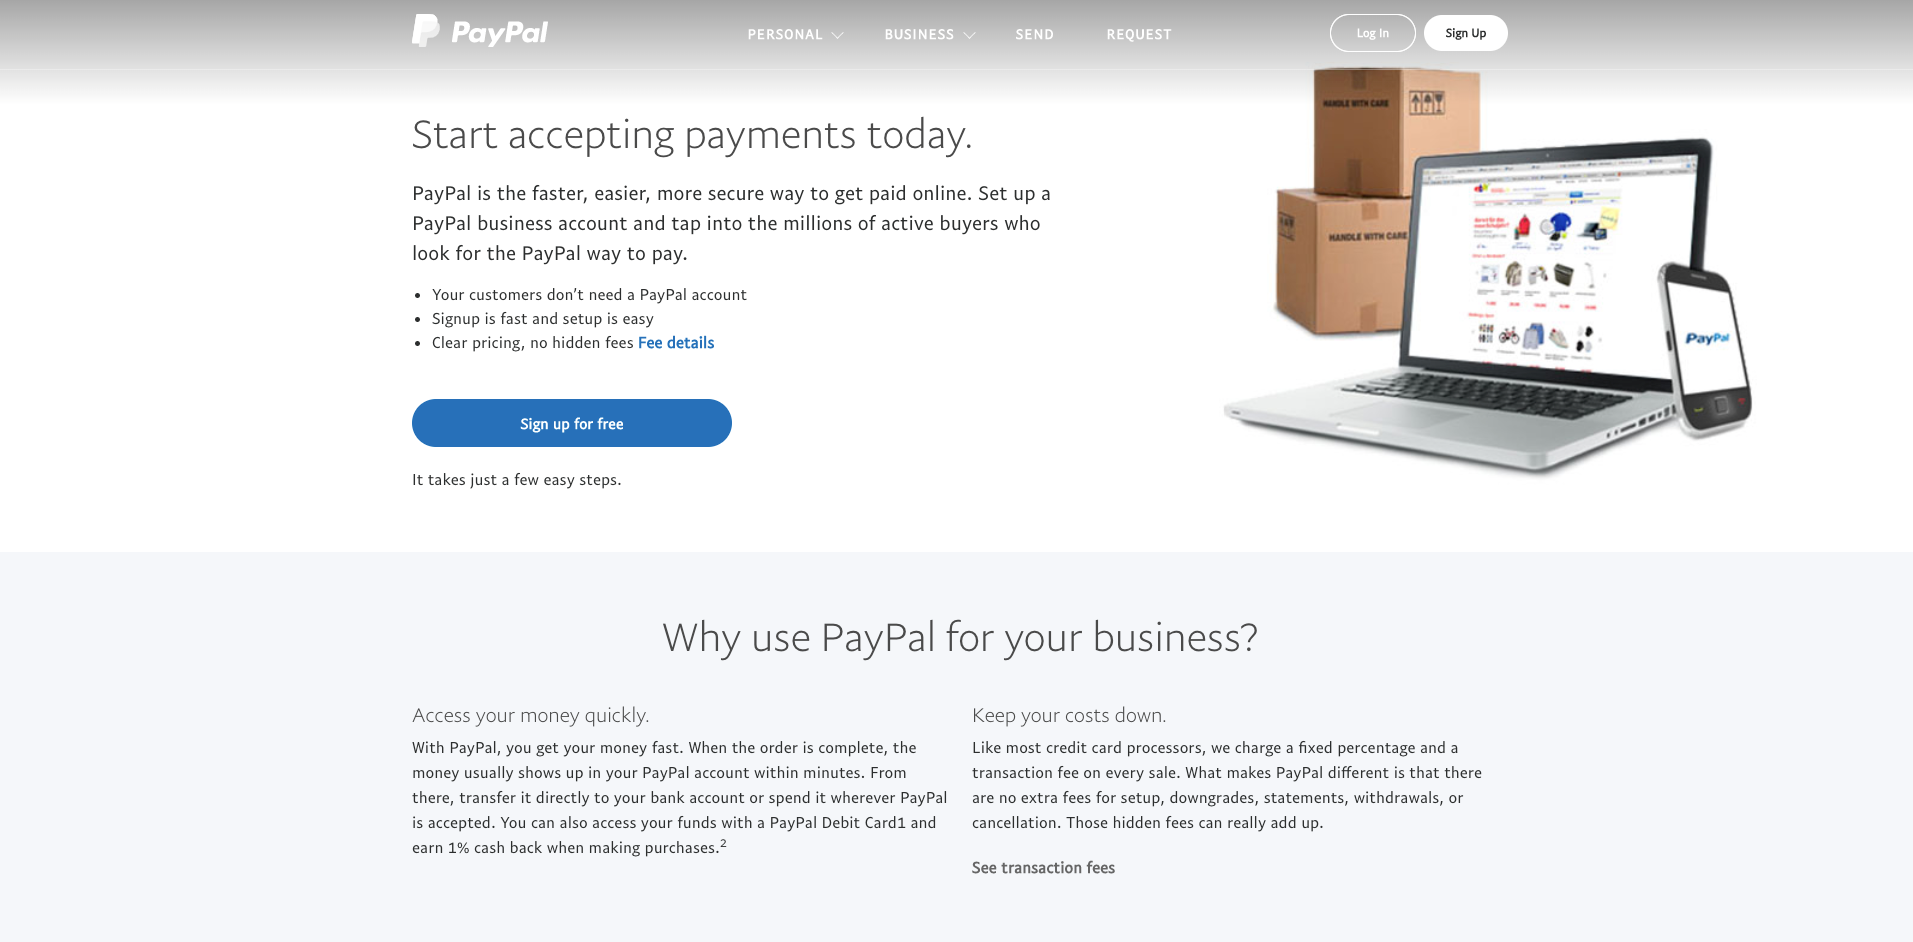 PayPal website homepage screenshot